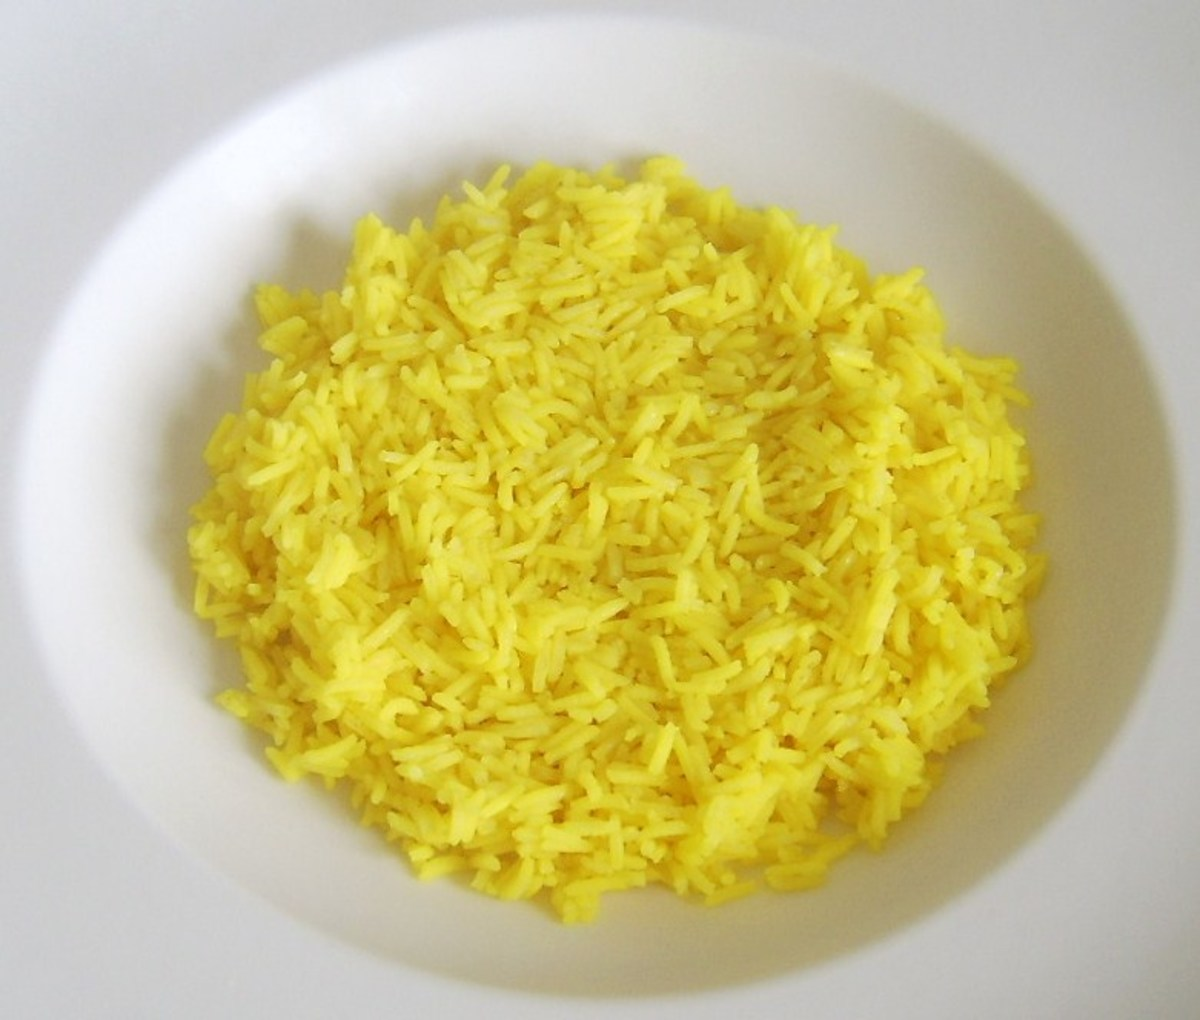 Bed of turmeric spiced rice in serving plate